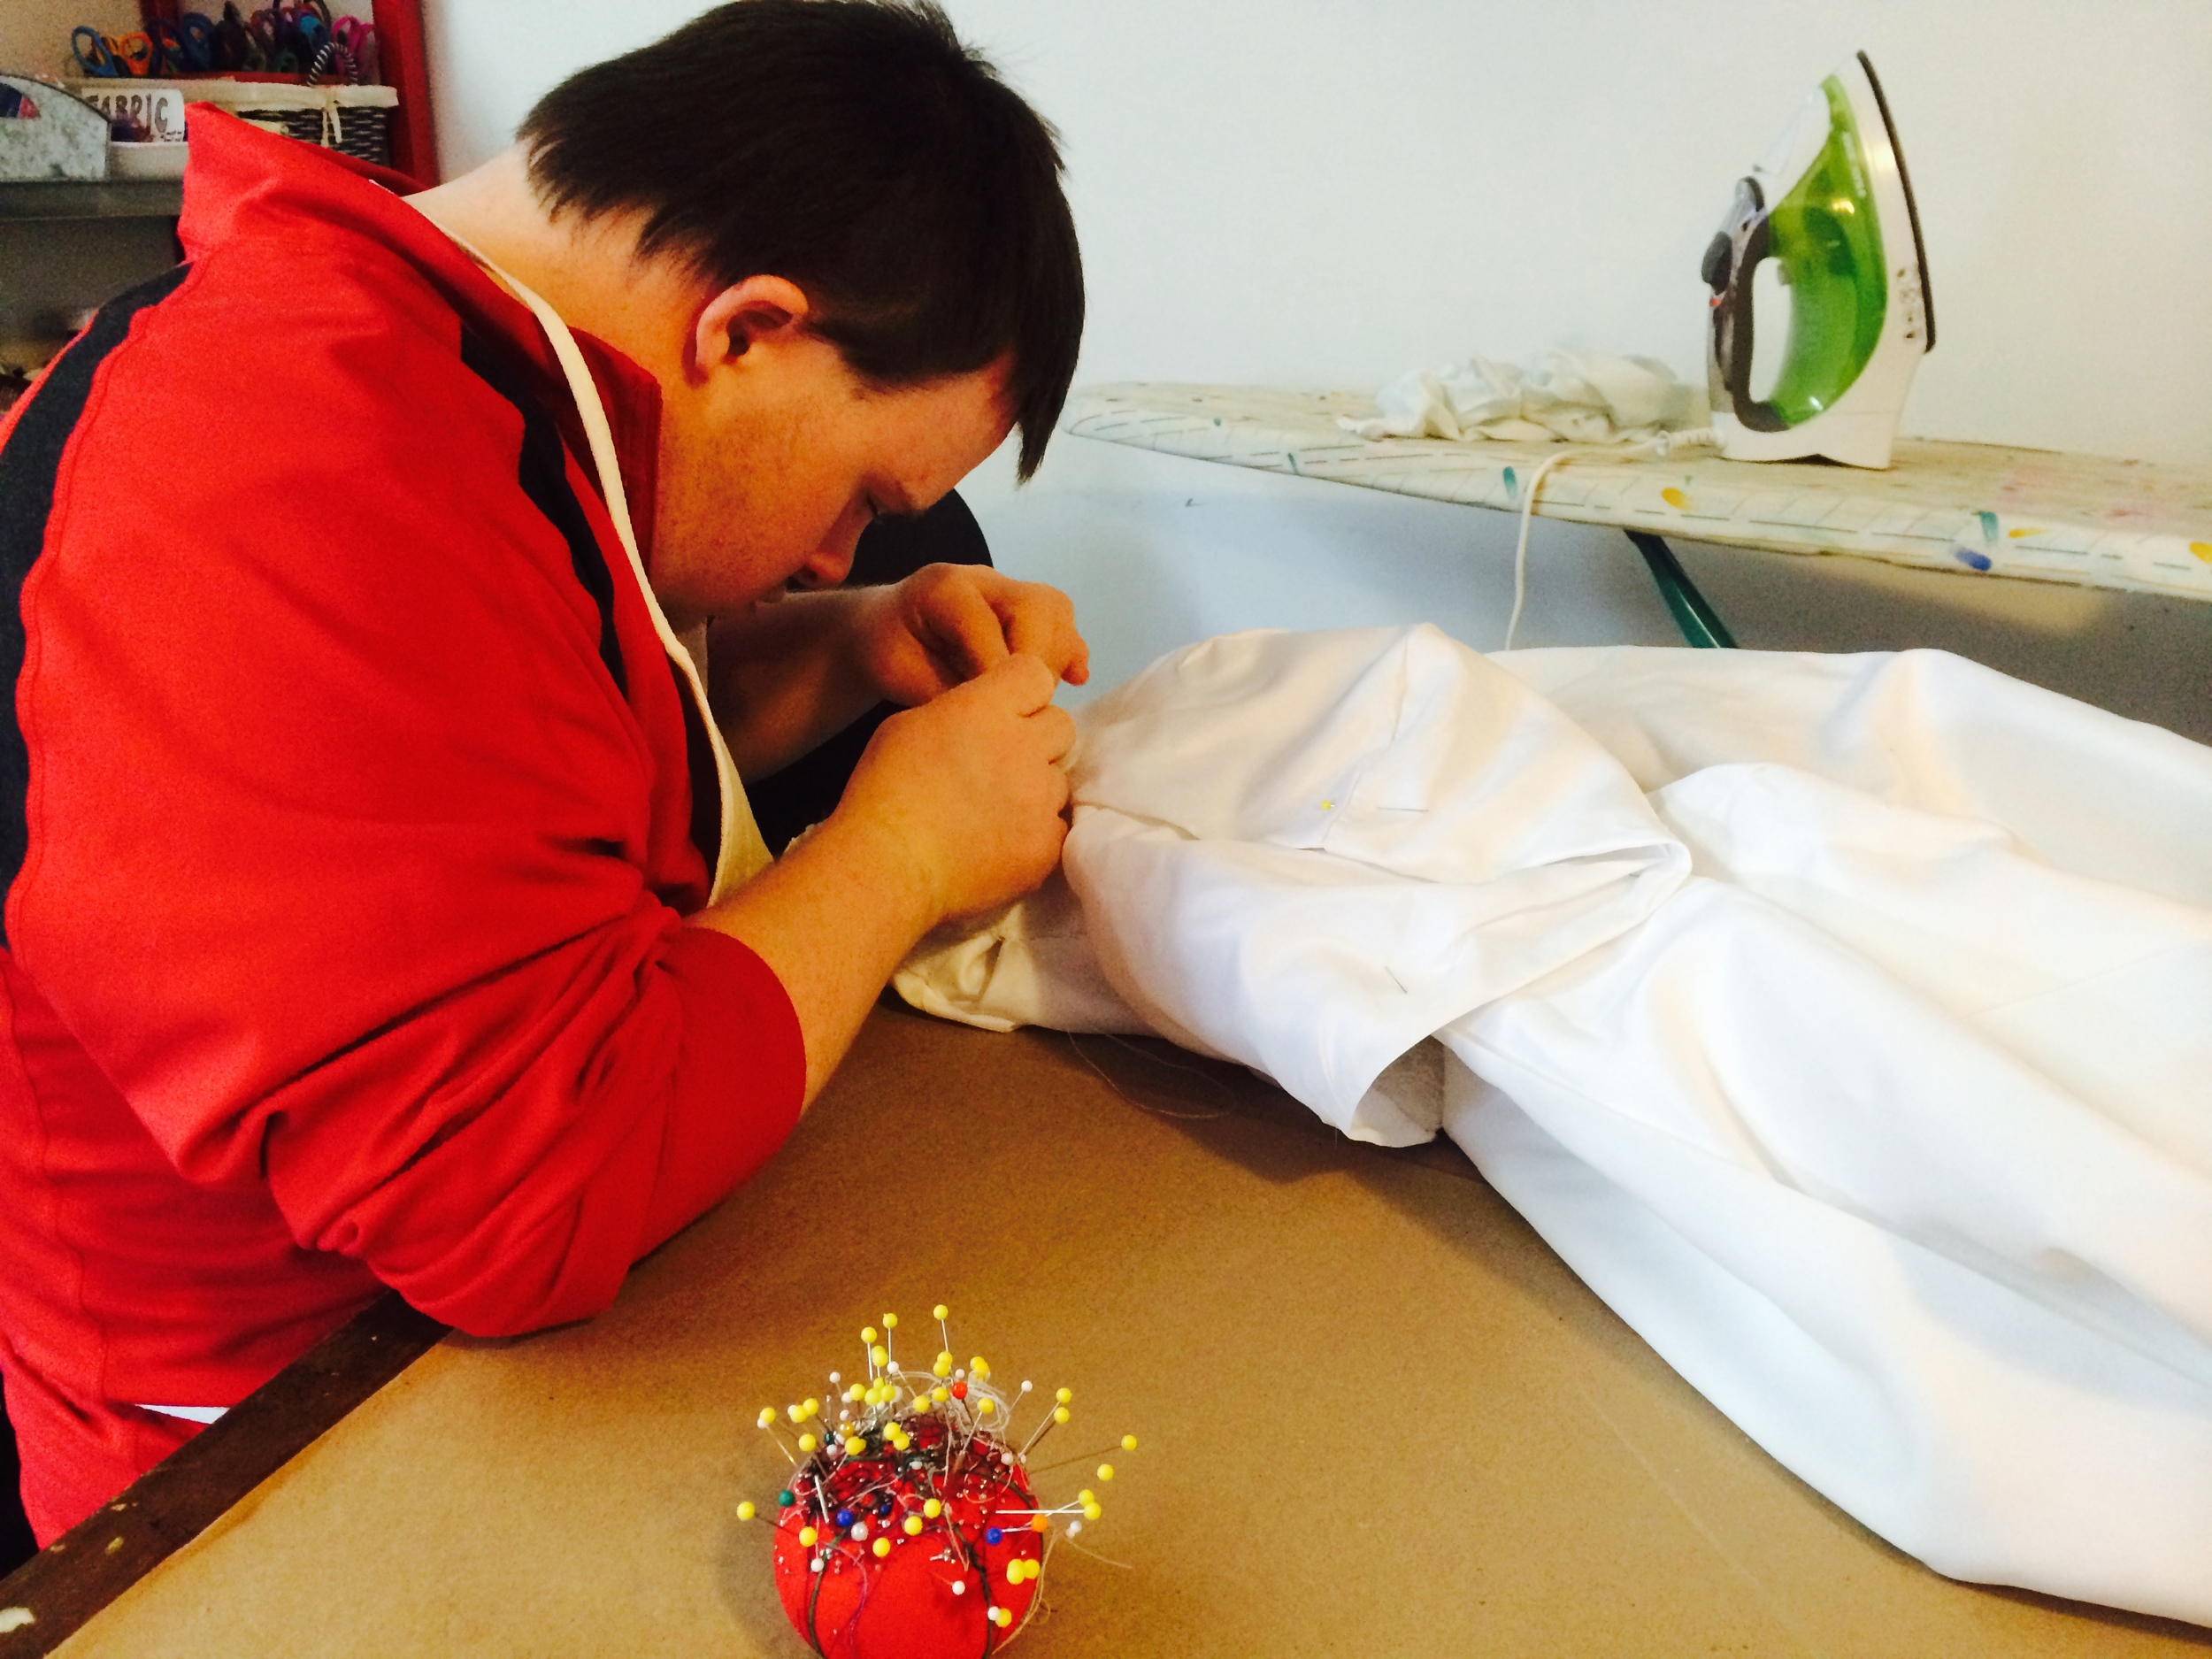 The incredible wedding dress/cape being sewn by hand again this week.